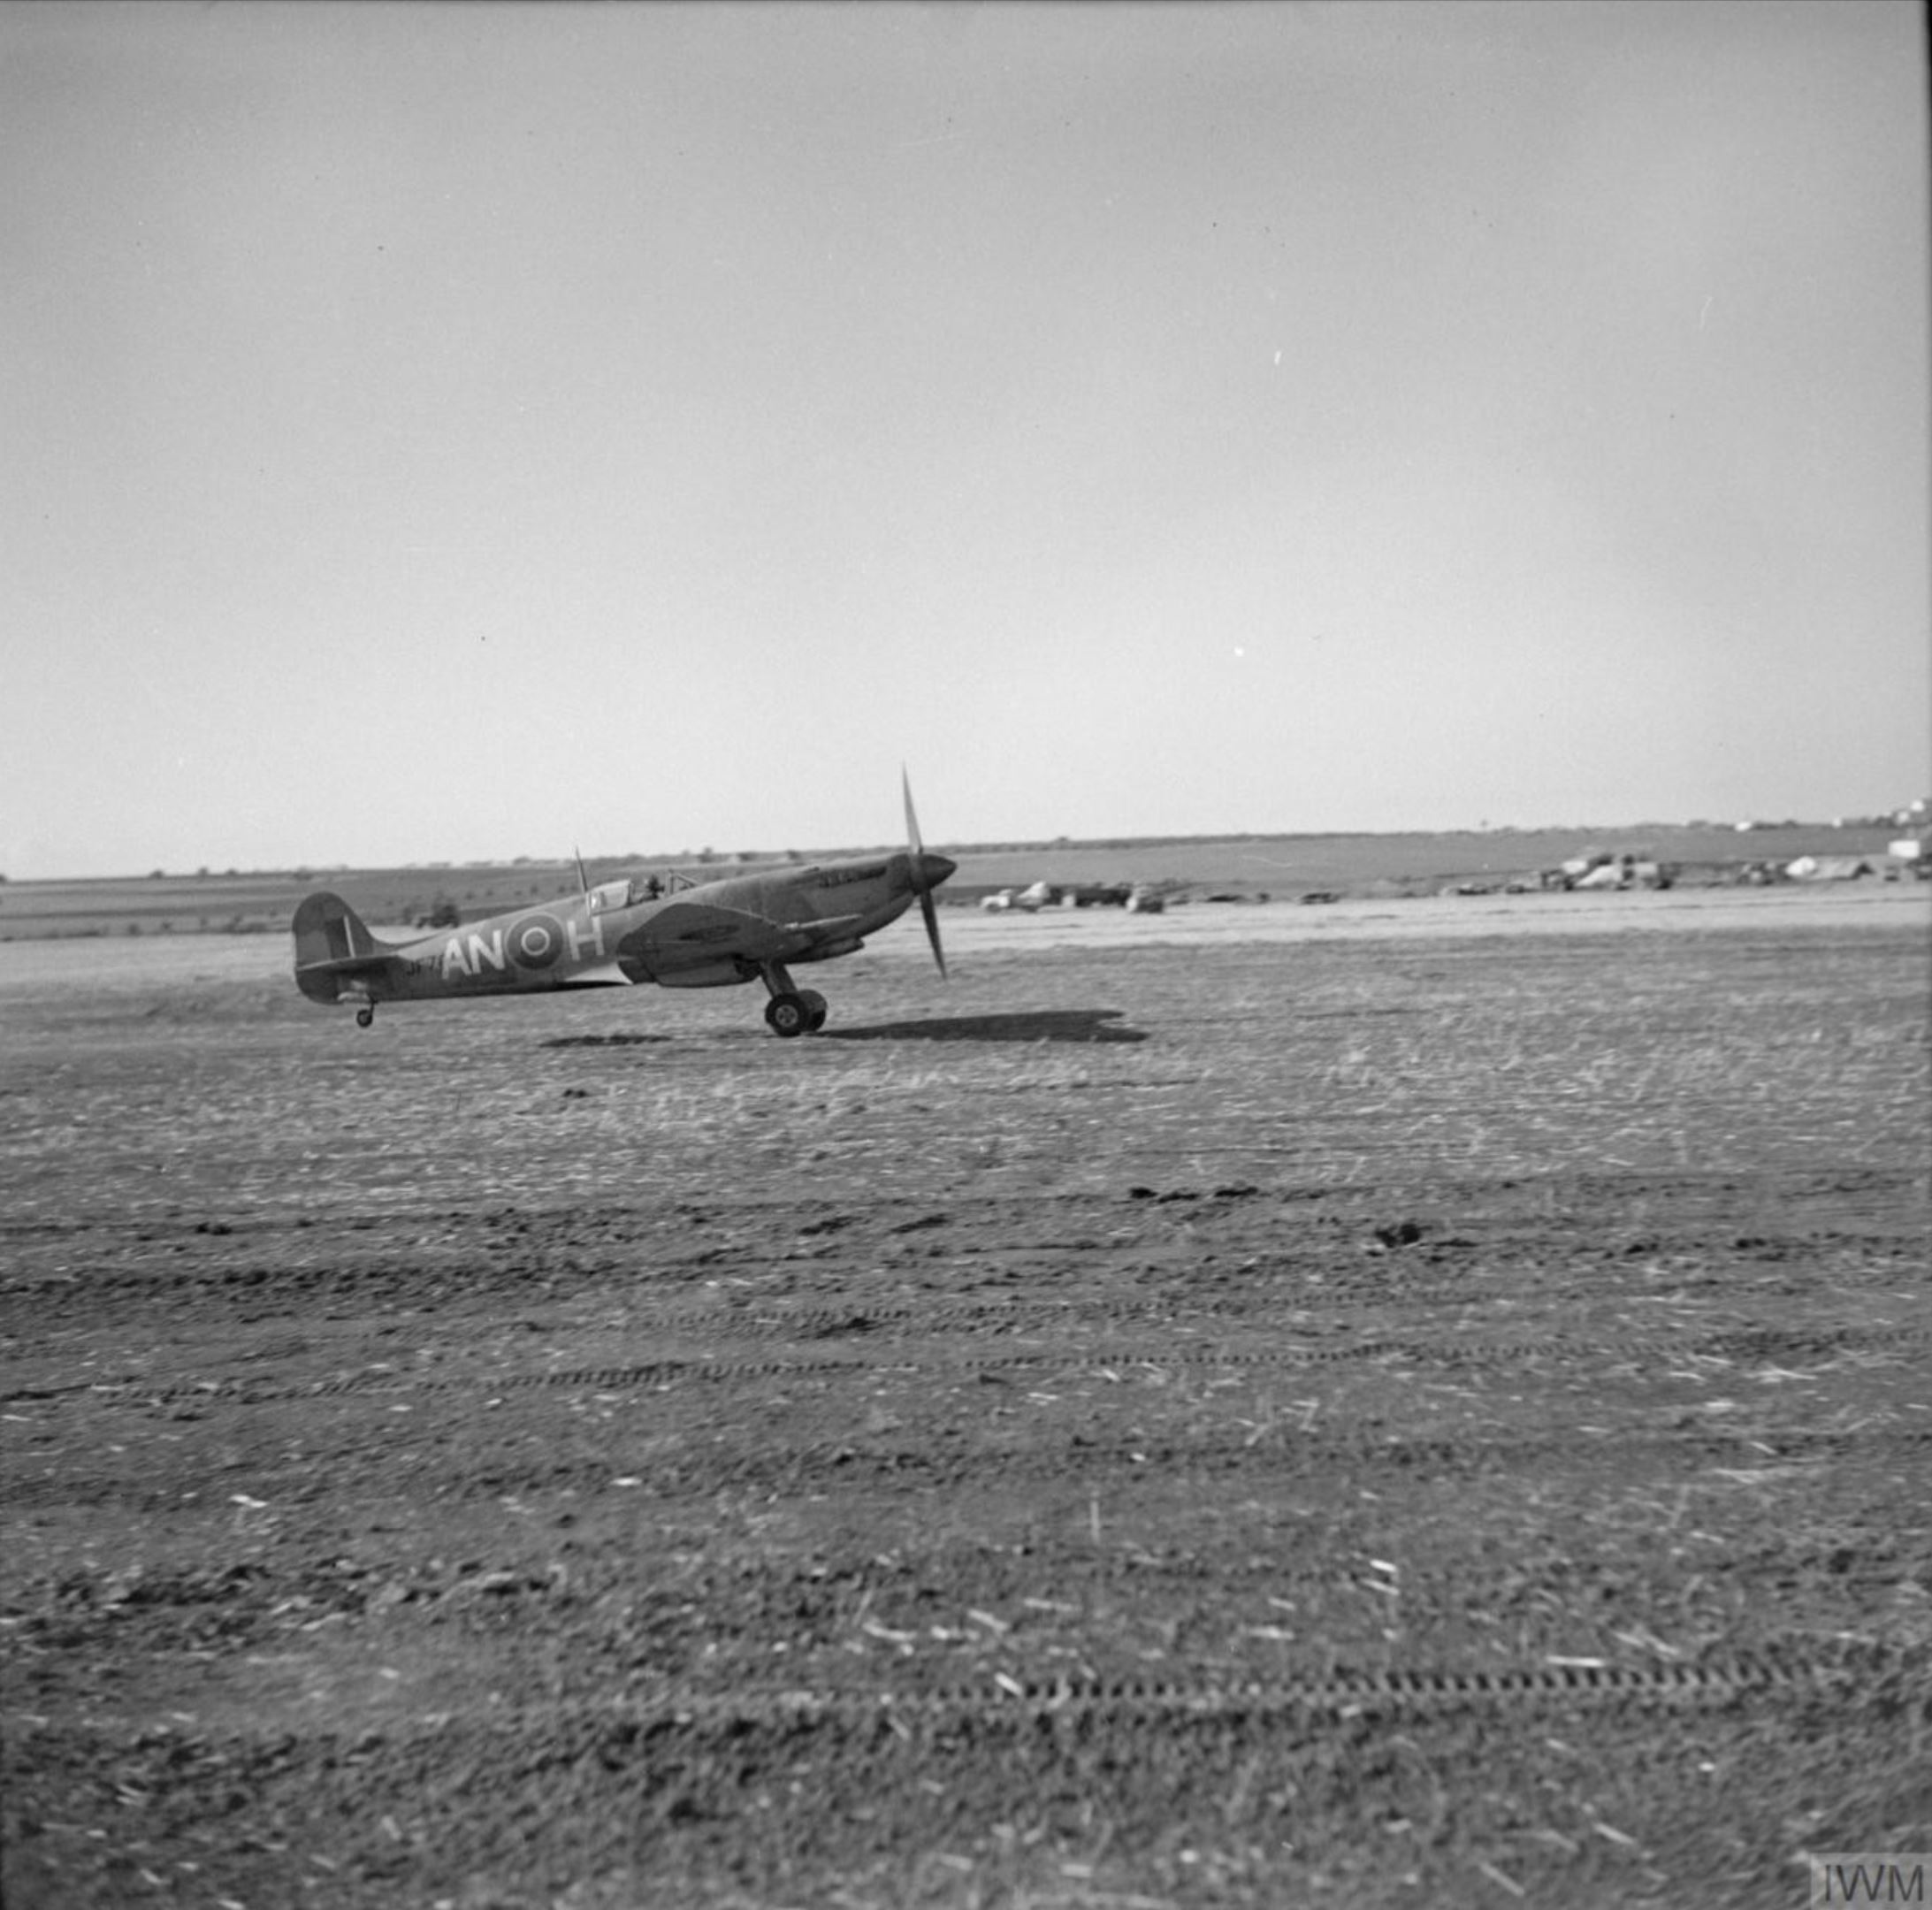 Spitfire MkVII c wing RCAF 417 ANH JF703 taking off at Canne Italy IWM CNA278